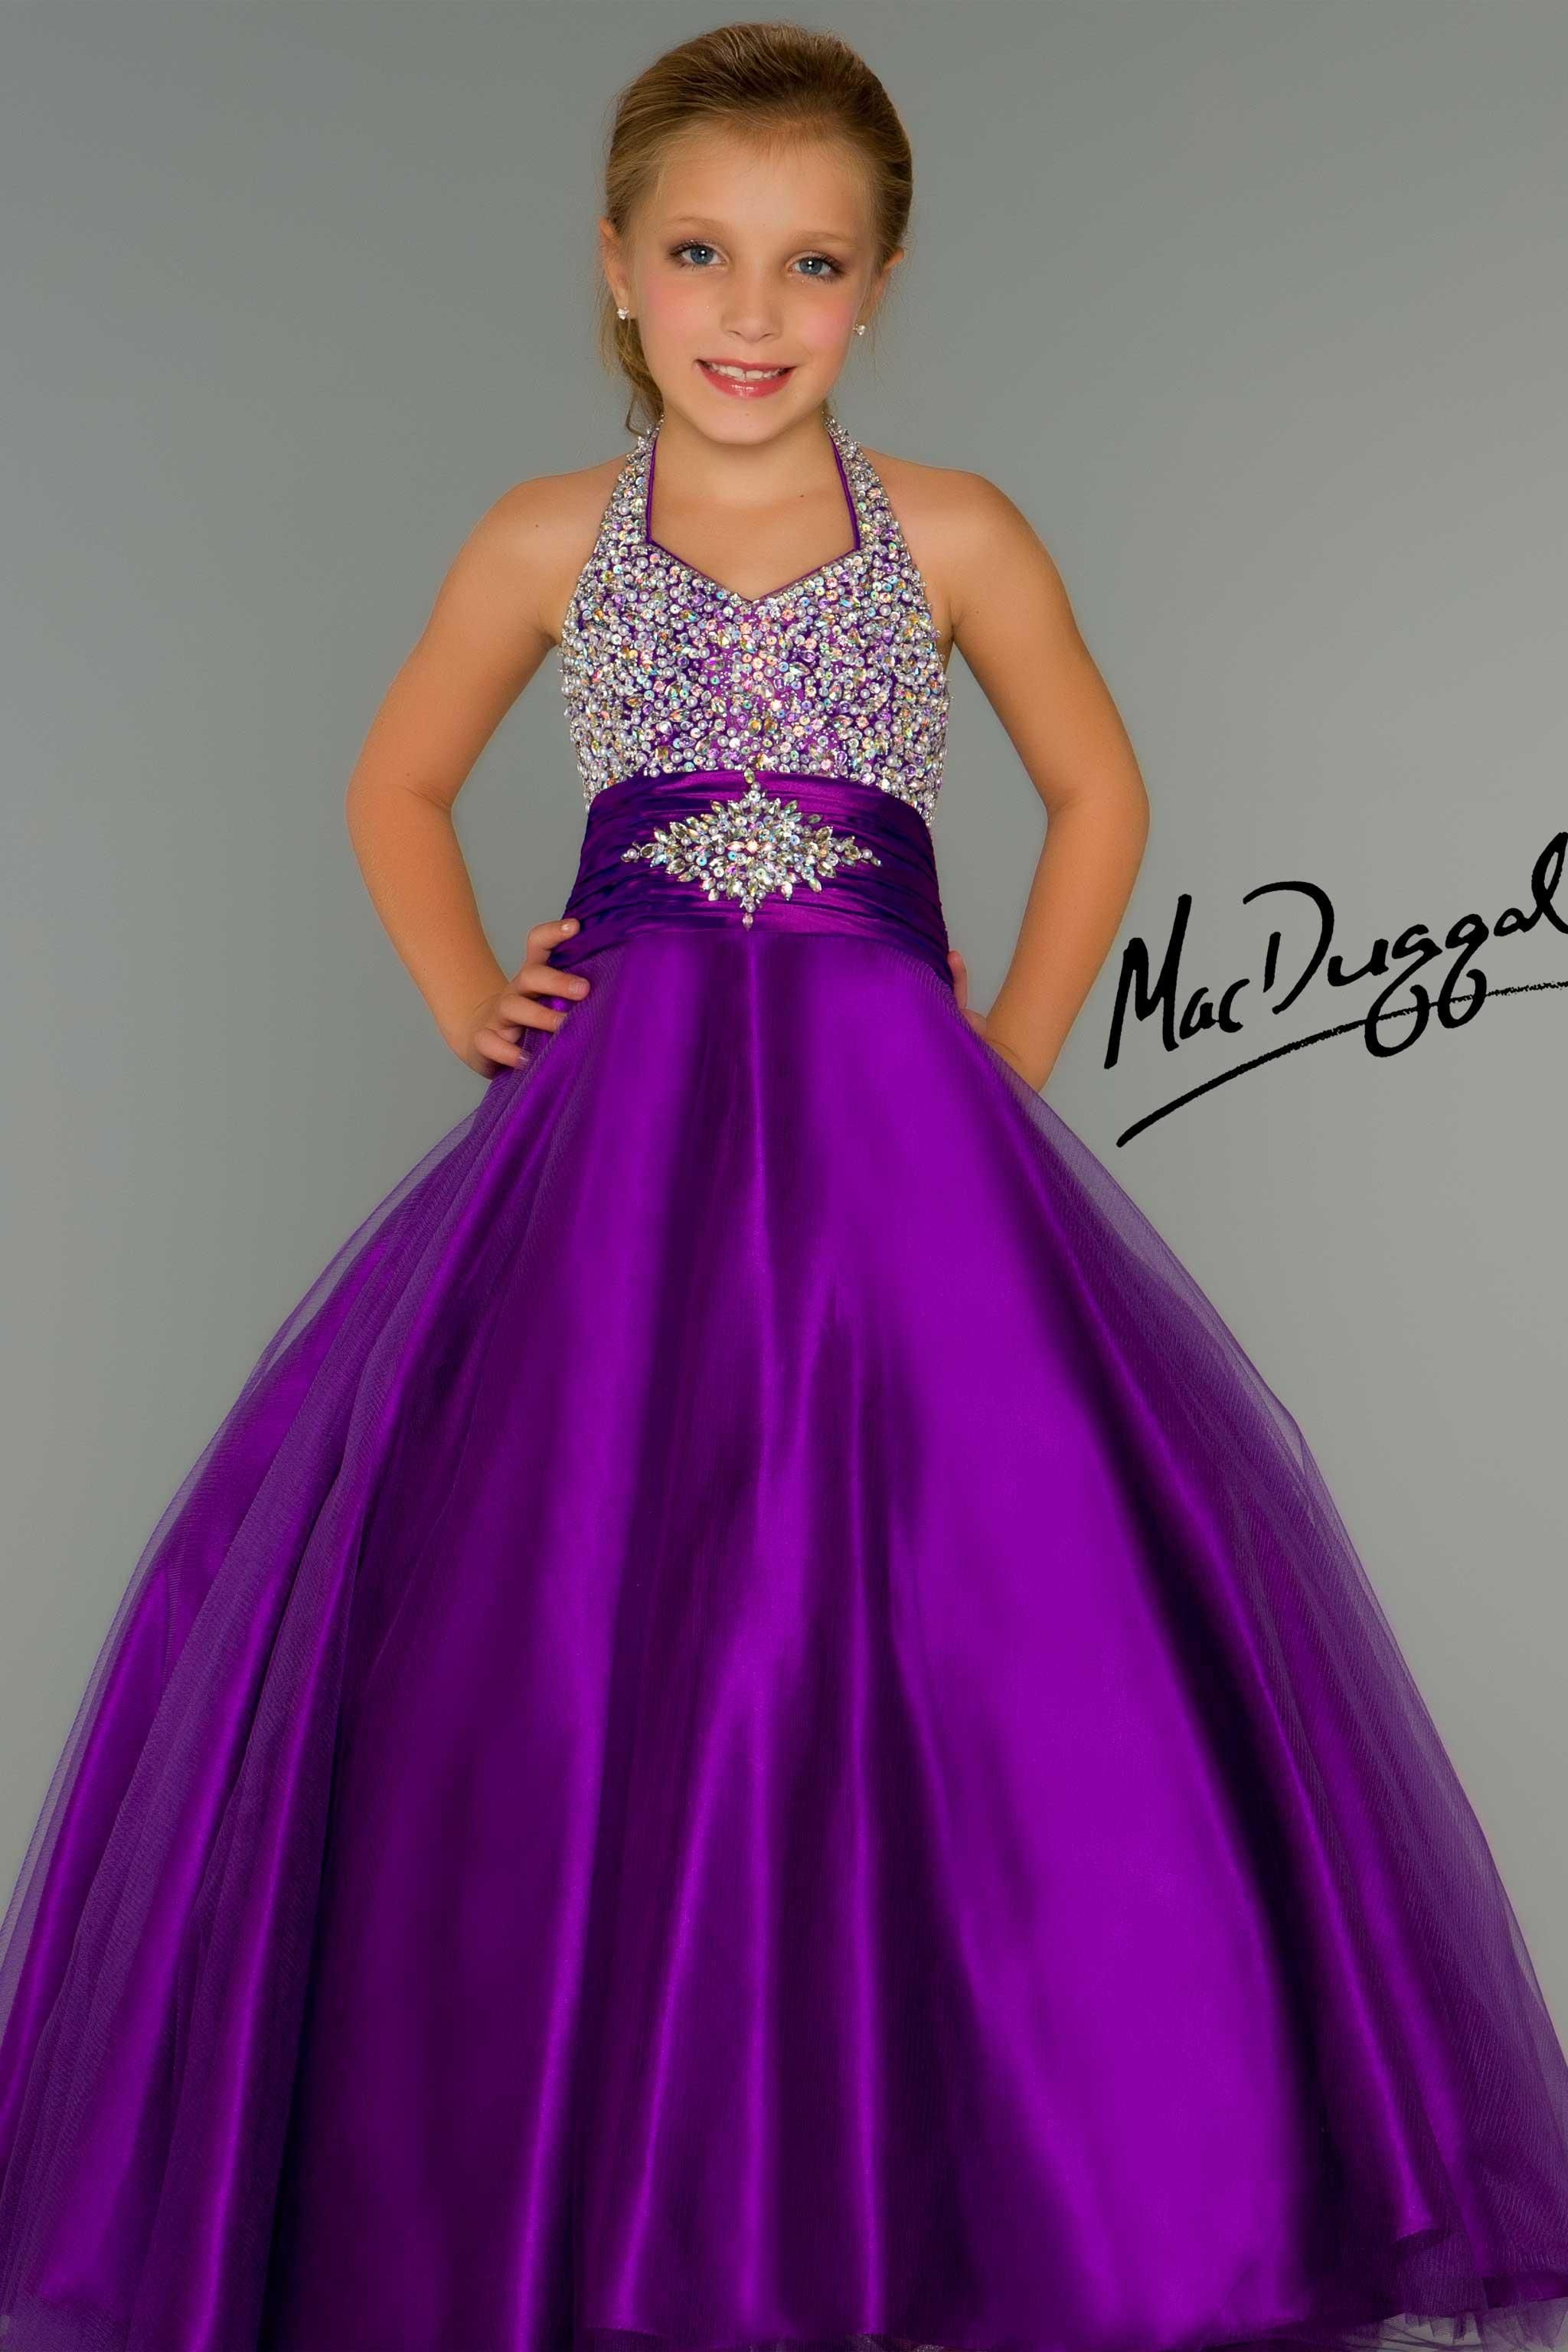 Little Girls Pageant Dress in Purple - Mac Duggal | Glitz & Glam ...